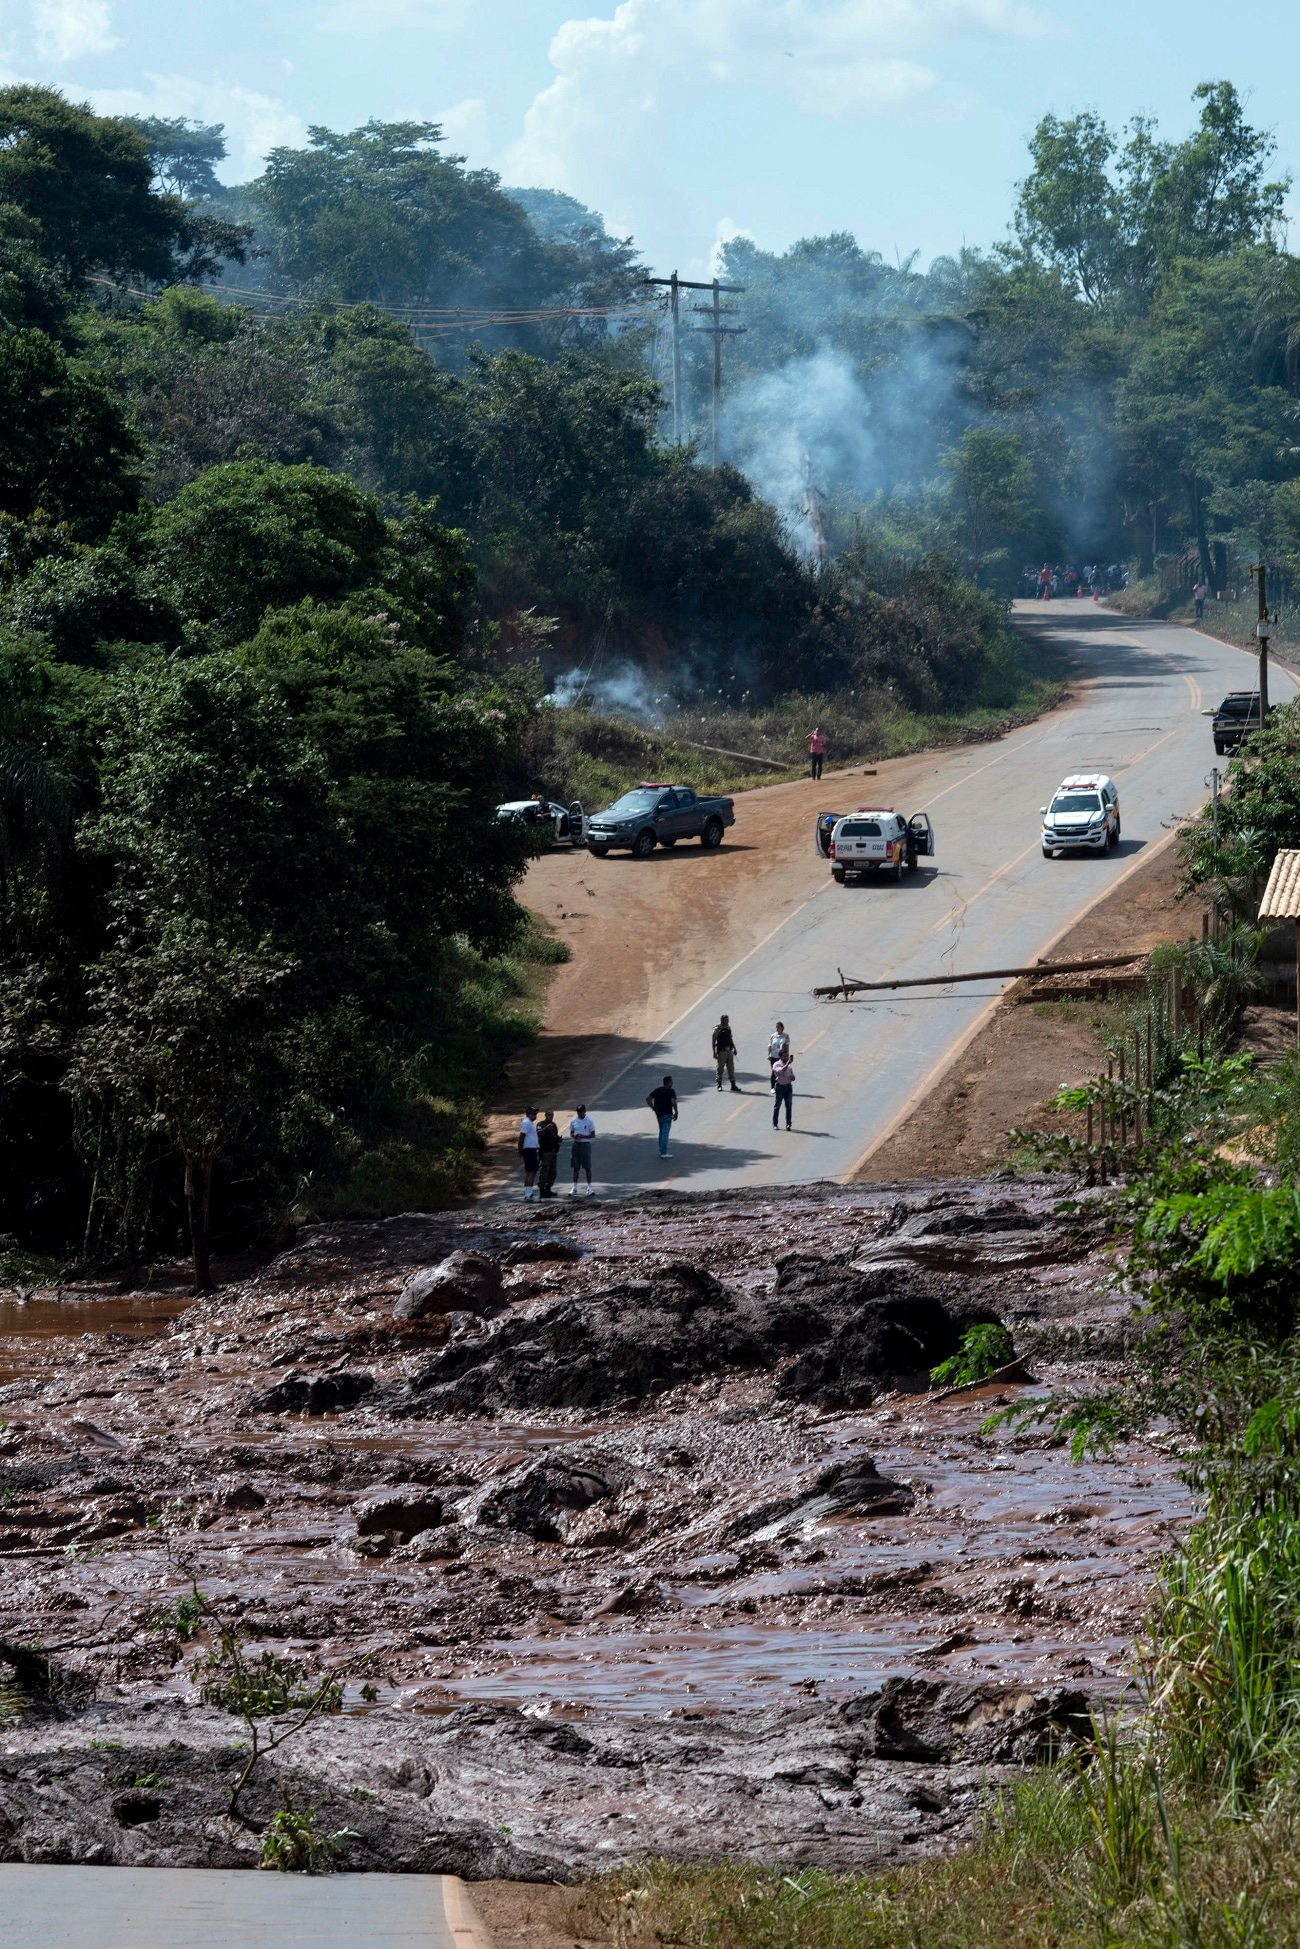 A road is blocked after a dam collapsed near Brumadinho, Brazil. (Leo Drumond/Nitro via AP)